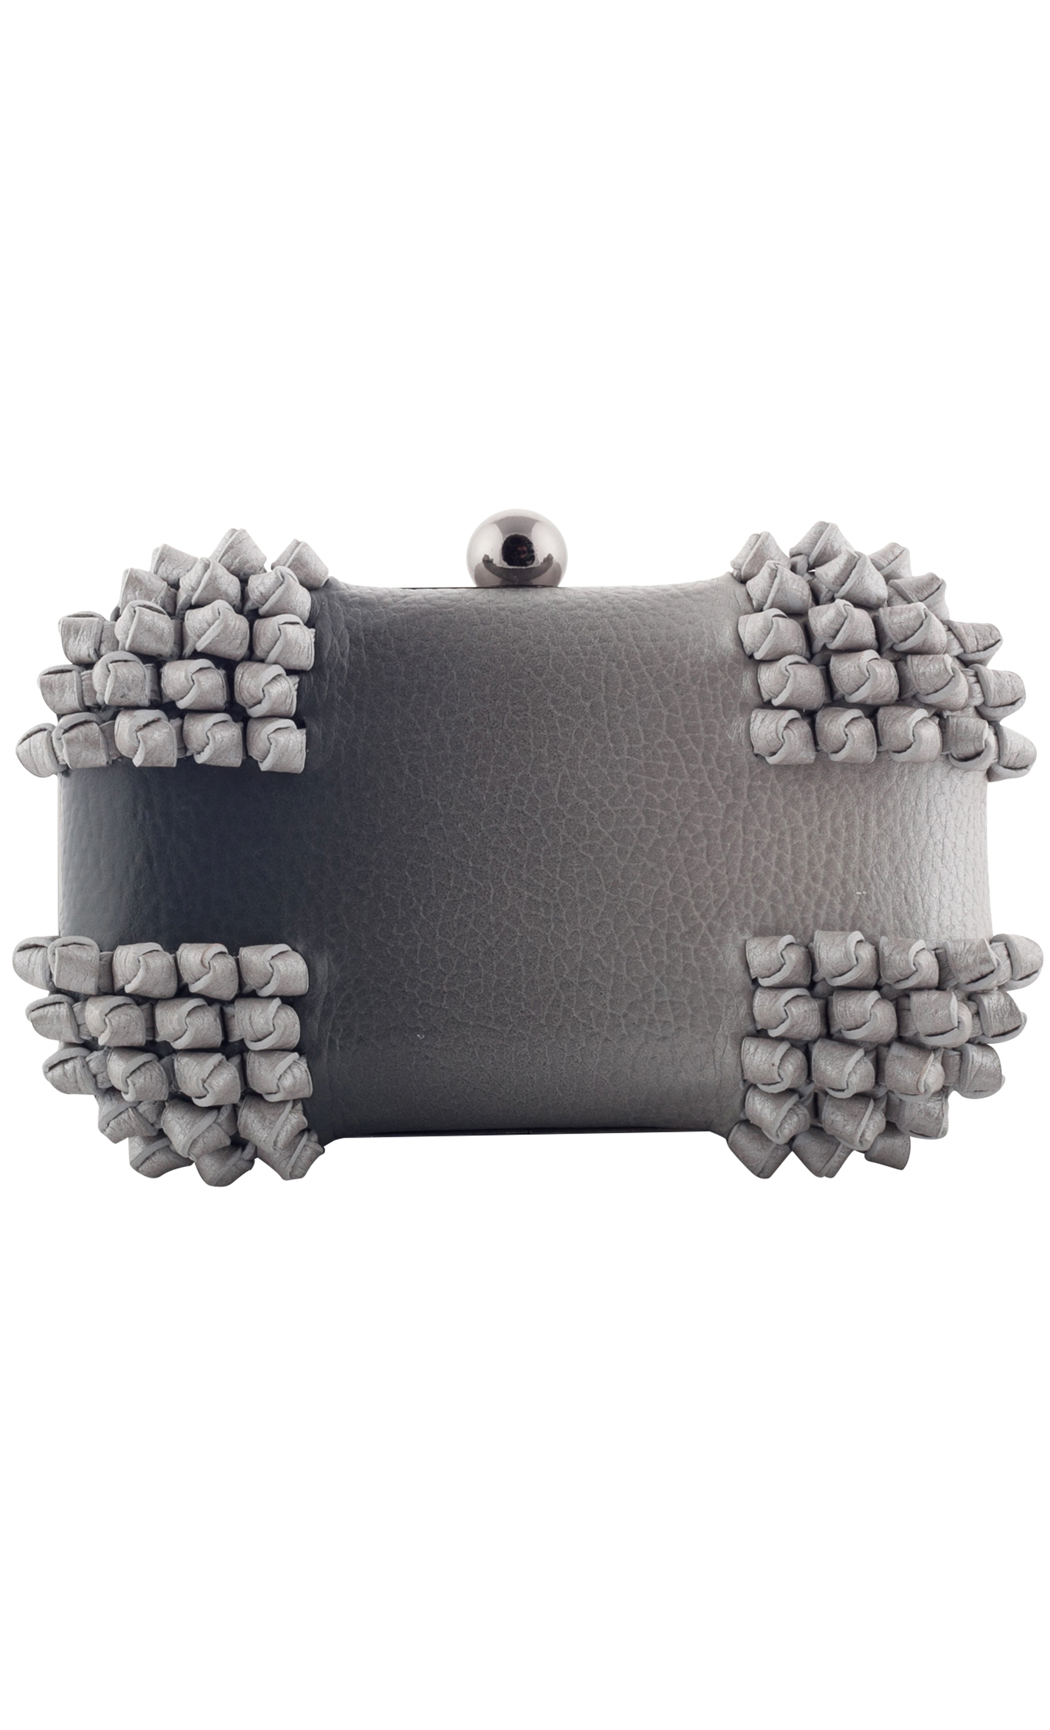 Blend Knot Box Clutch in Gray-Silver. Buy Online